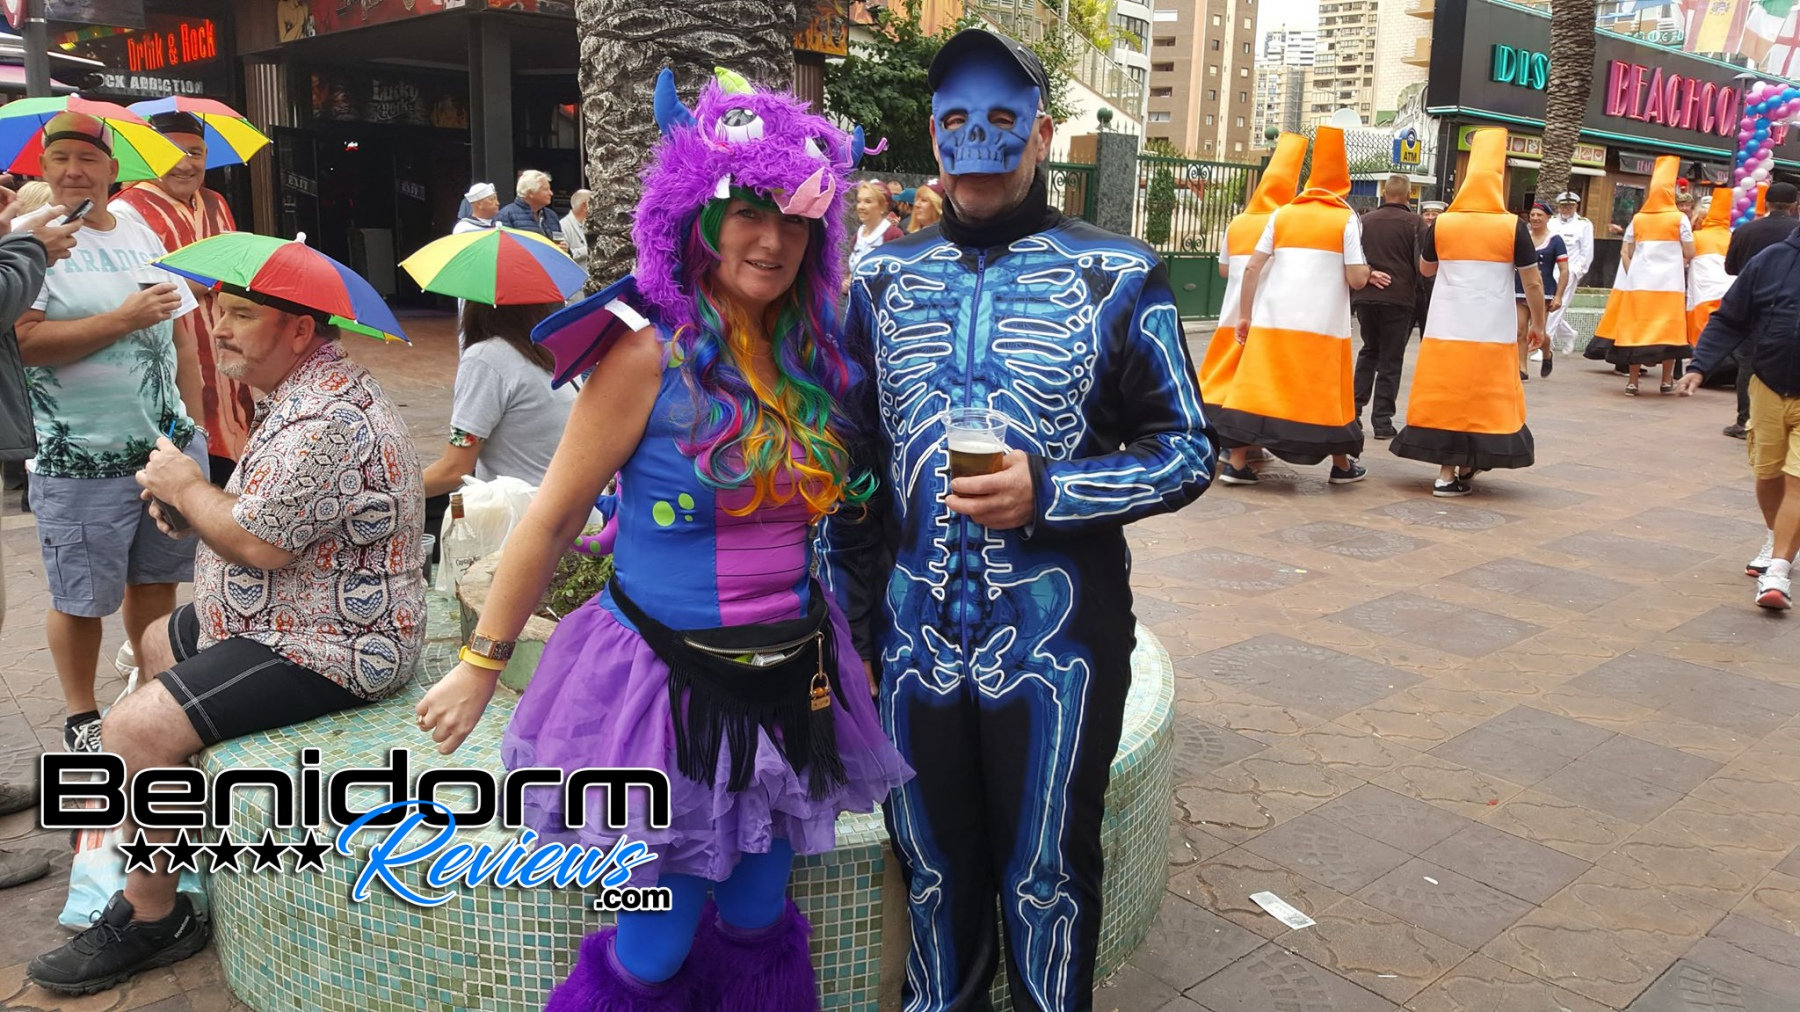 Benidorm-Fiestas-2019-Fancy-Dress-138